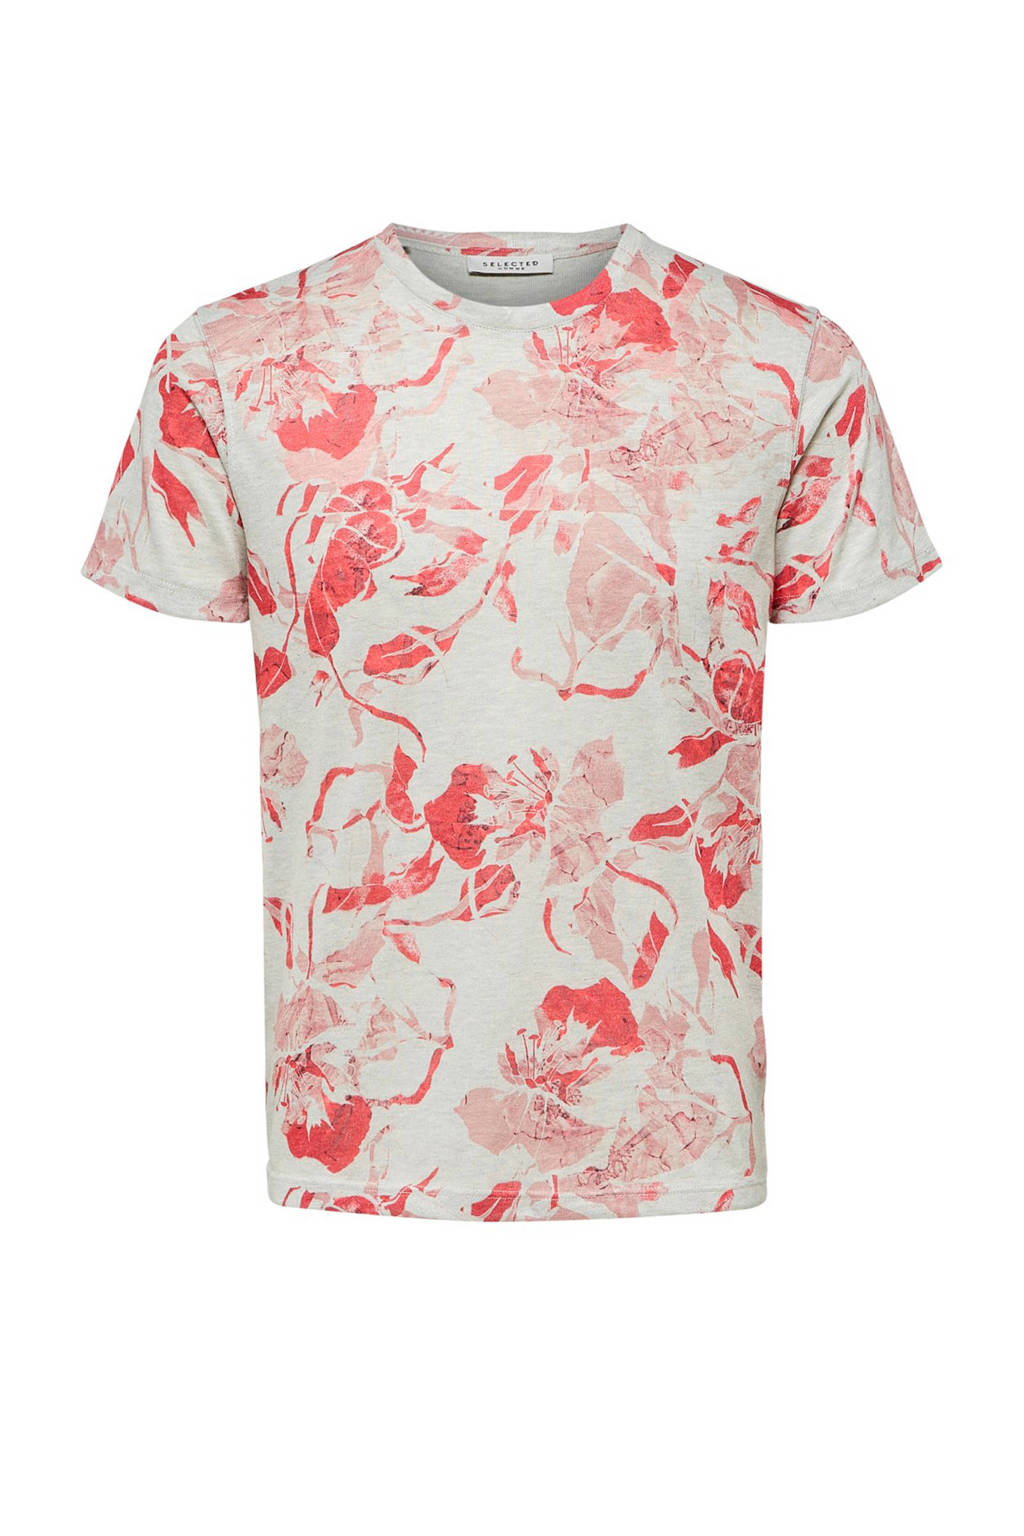 SELECTED HOMME T-shirt, Blauw